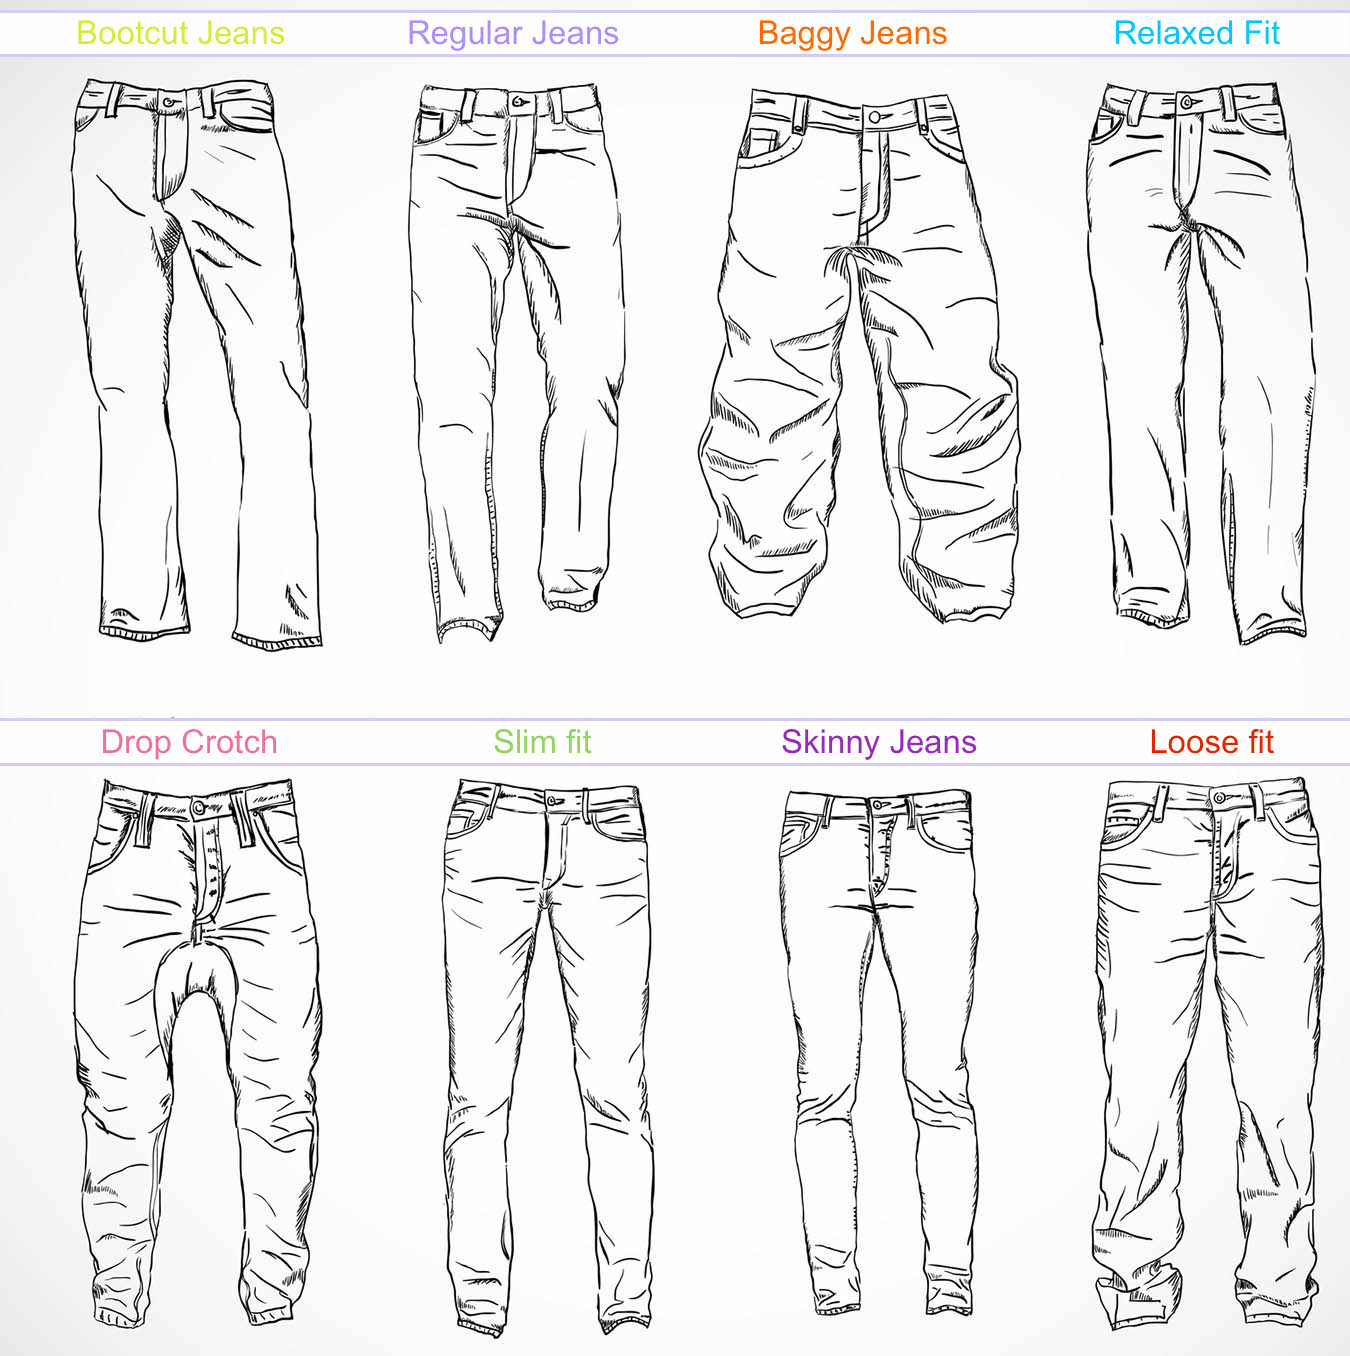 Jeans Fit Styles Illustrated